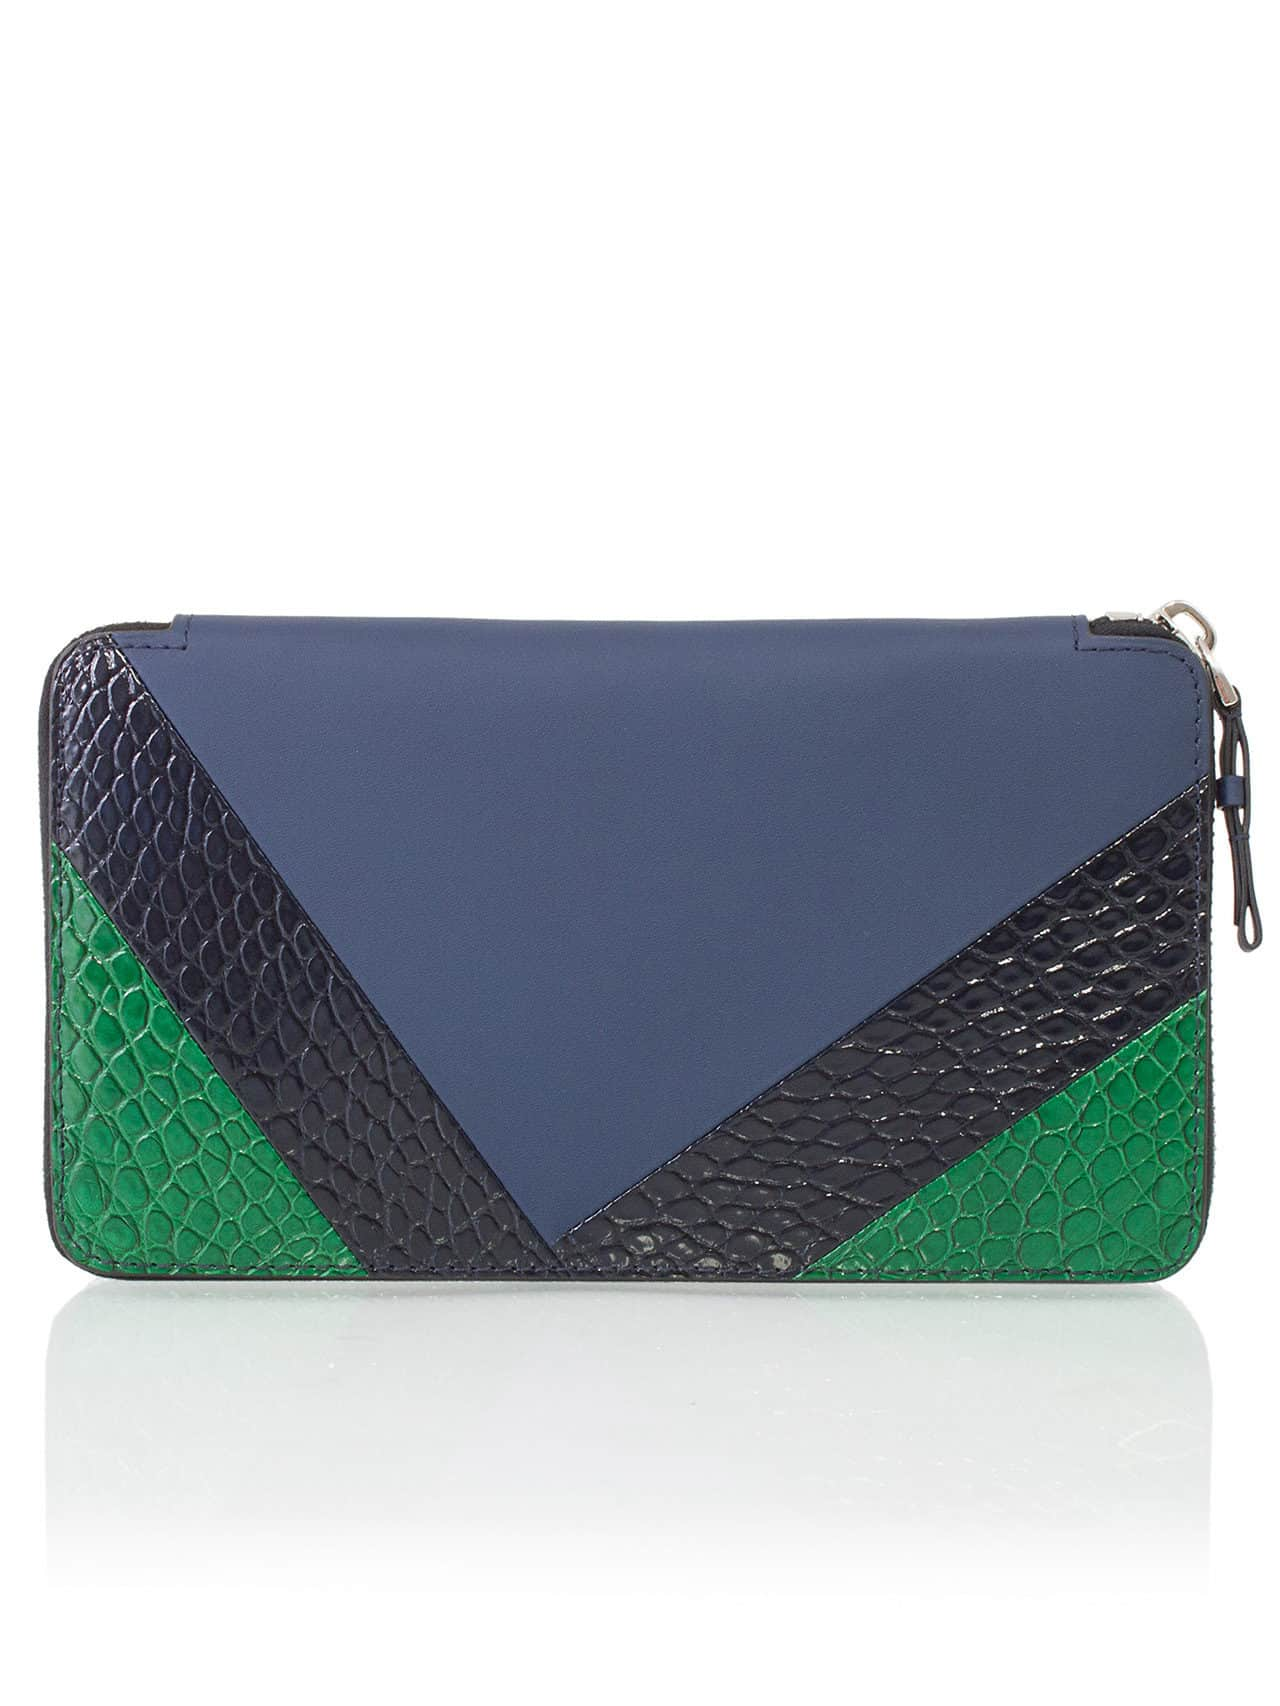 zippy wallet alligator